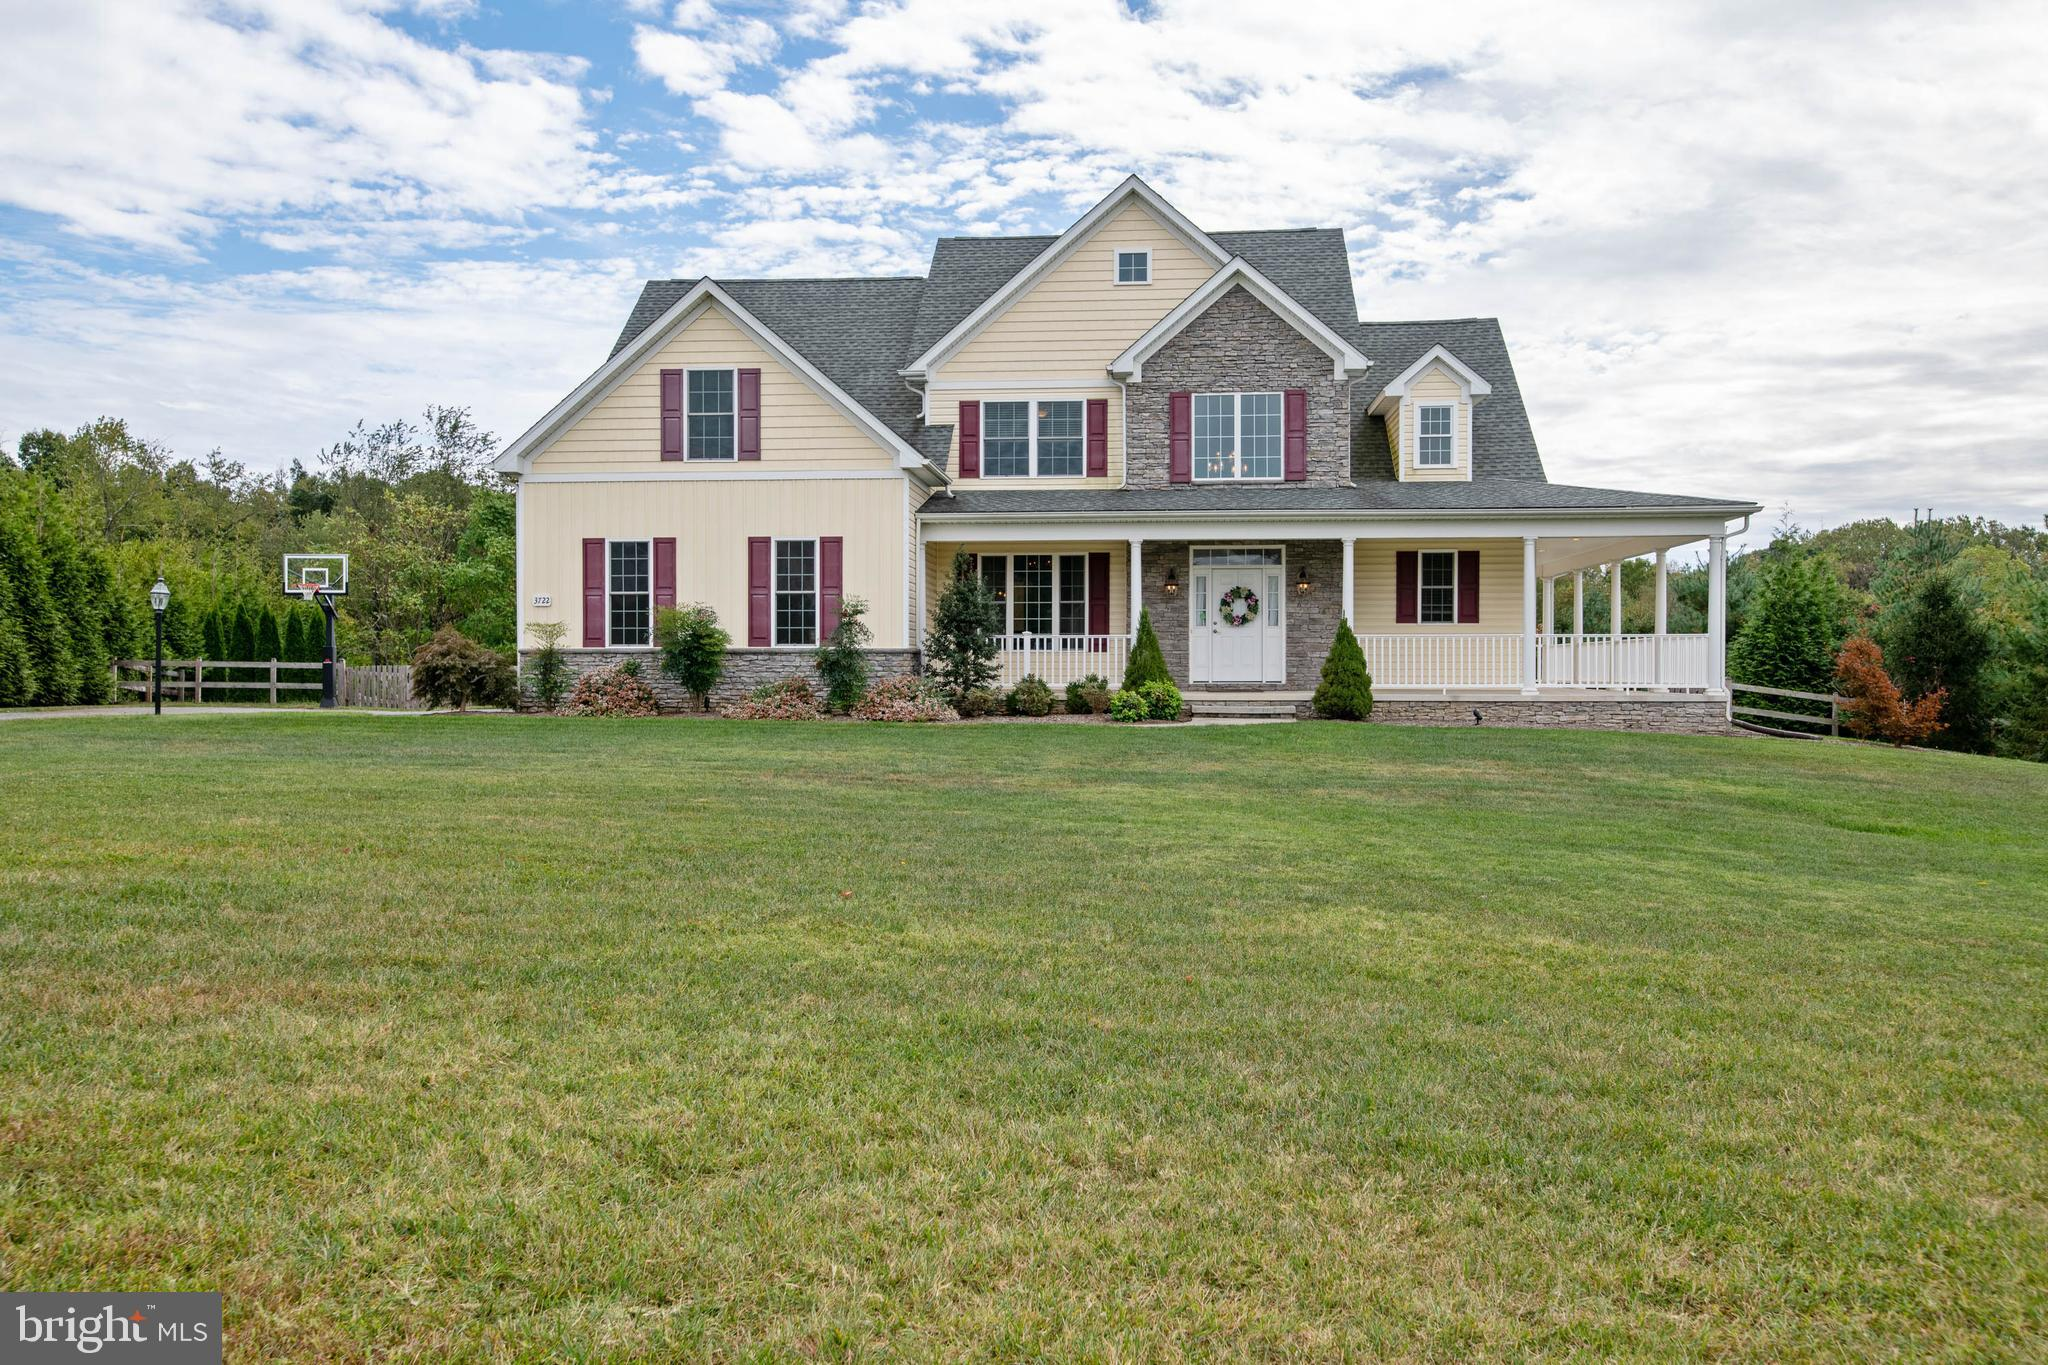 Turnkey property waiting for you! Beautiful home situated on fenced level yard with stone patio.  Un